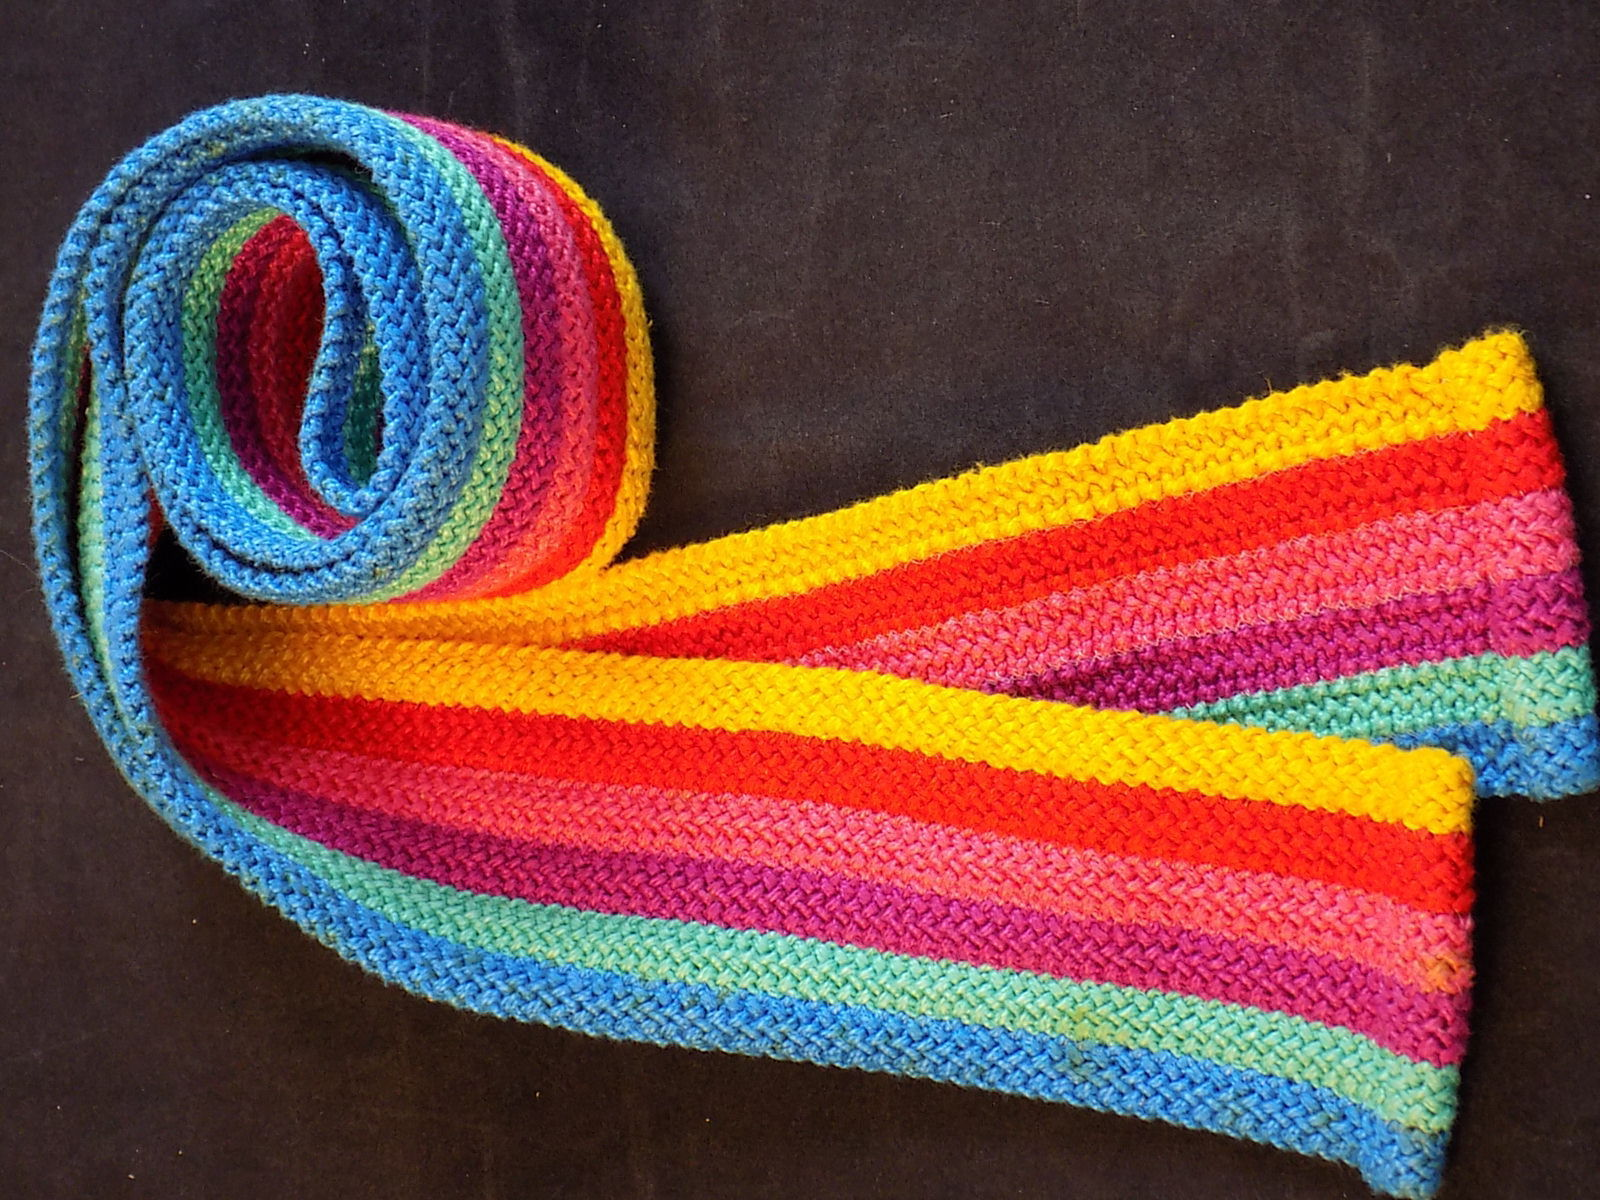 """WOMEN""""S FABRIC BELT 2.5"""" wd x 50"""" lng  Striped with Blue Purple Red and Yellow"""